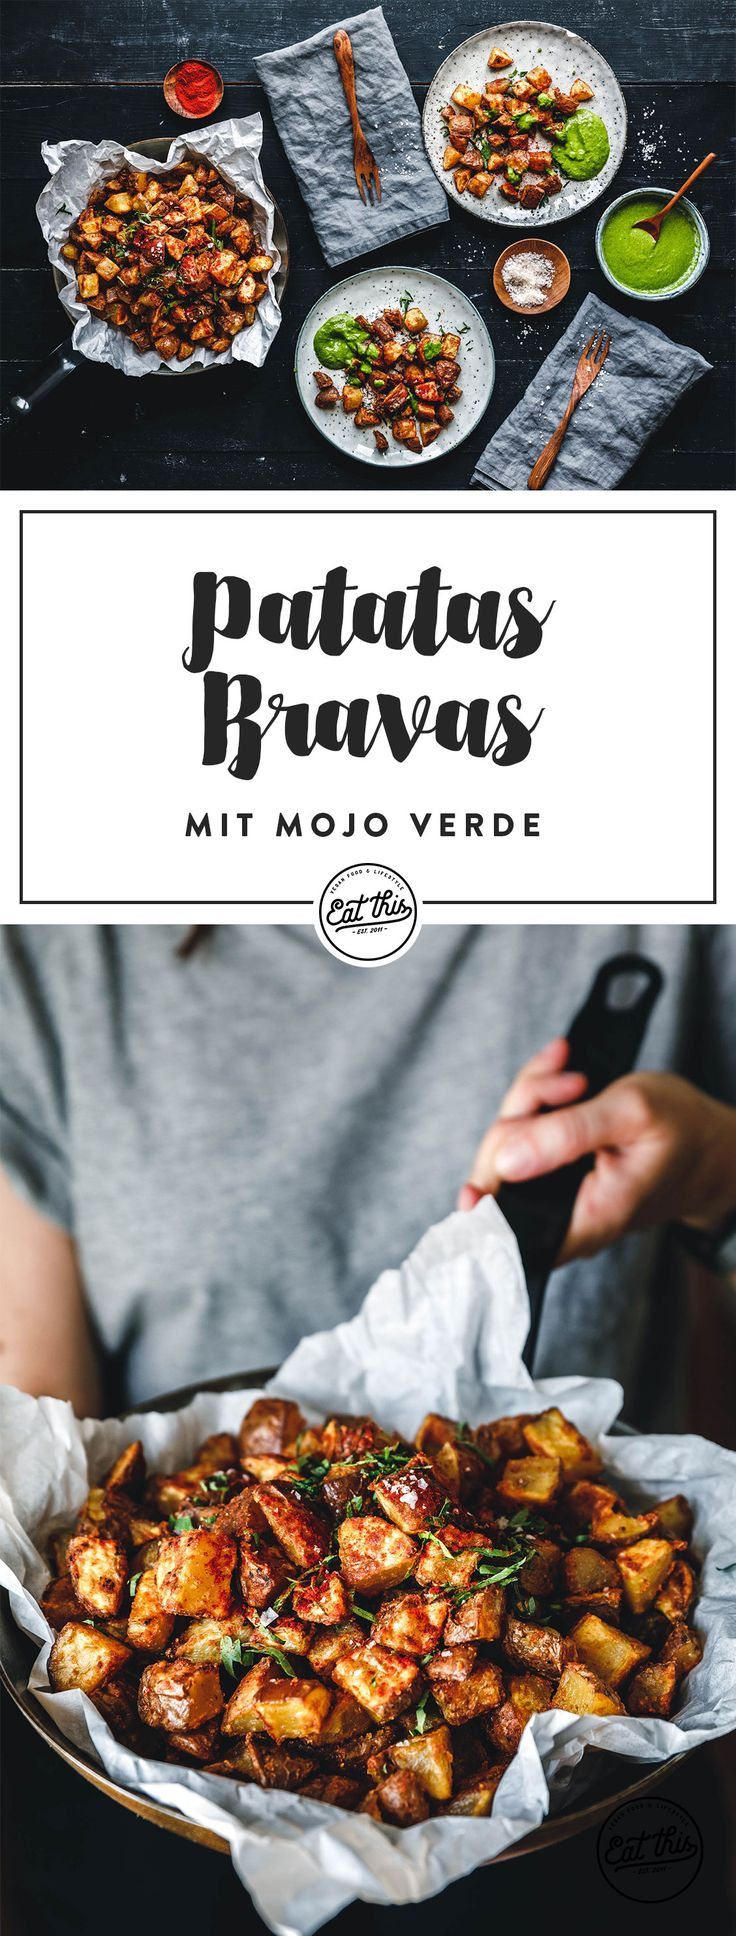 Patatas Bravas mit Mojo Verde · Eat this! Foodblog • Vegane Rezepte • Stories